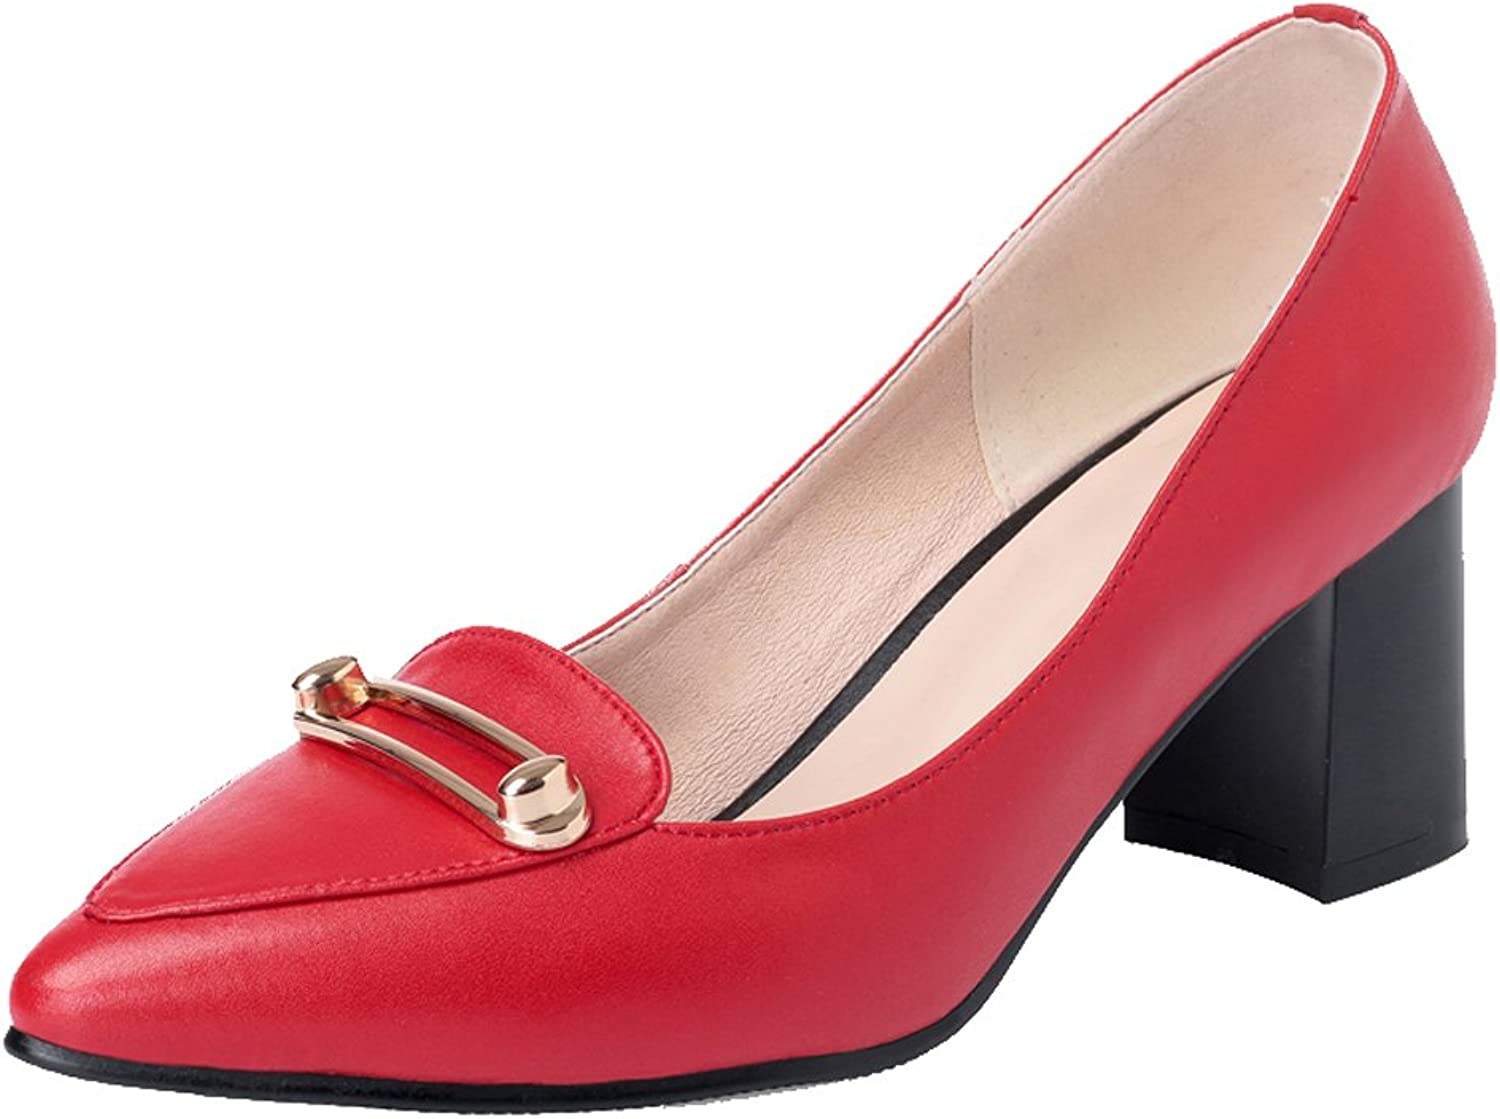 Dethan Women's Genuine Leather Pointed Toe Chunky Heel Pumps Court shoes